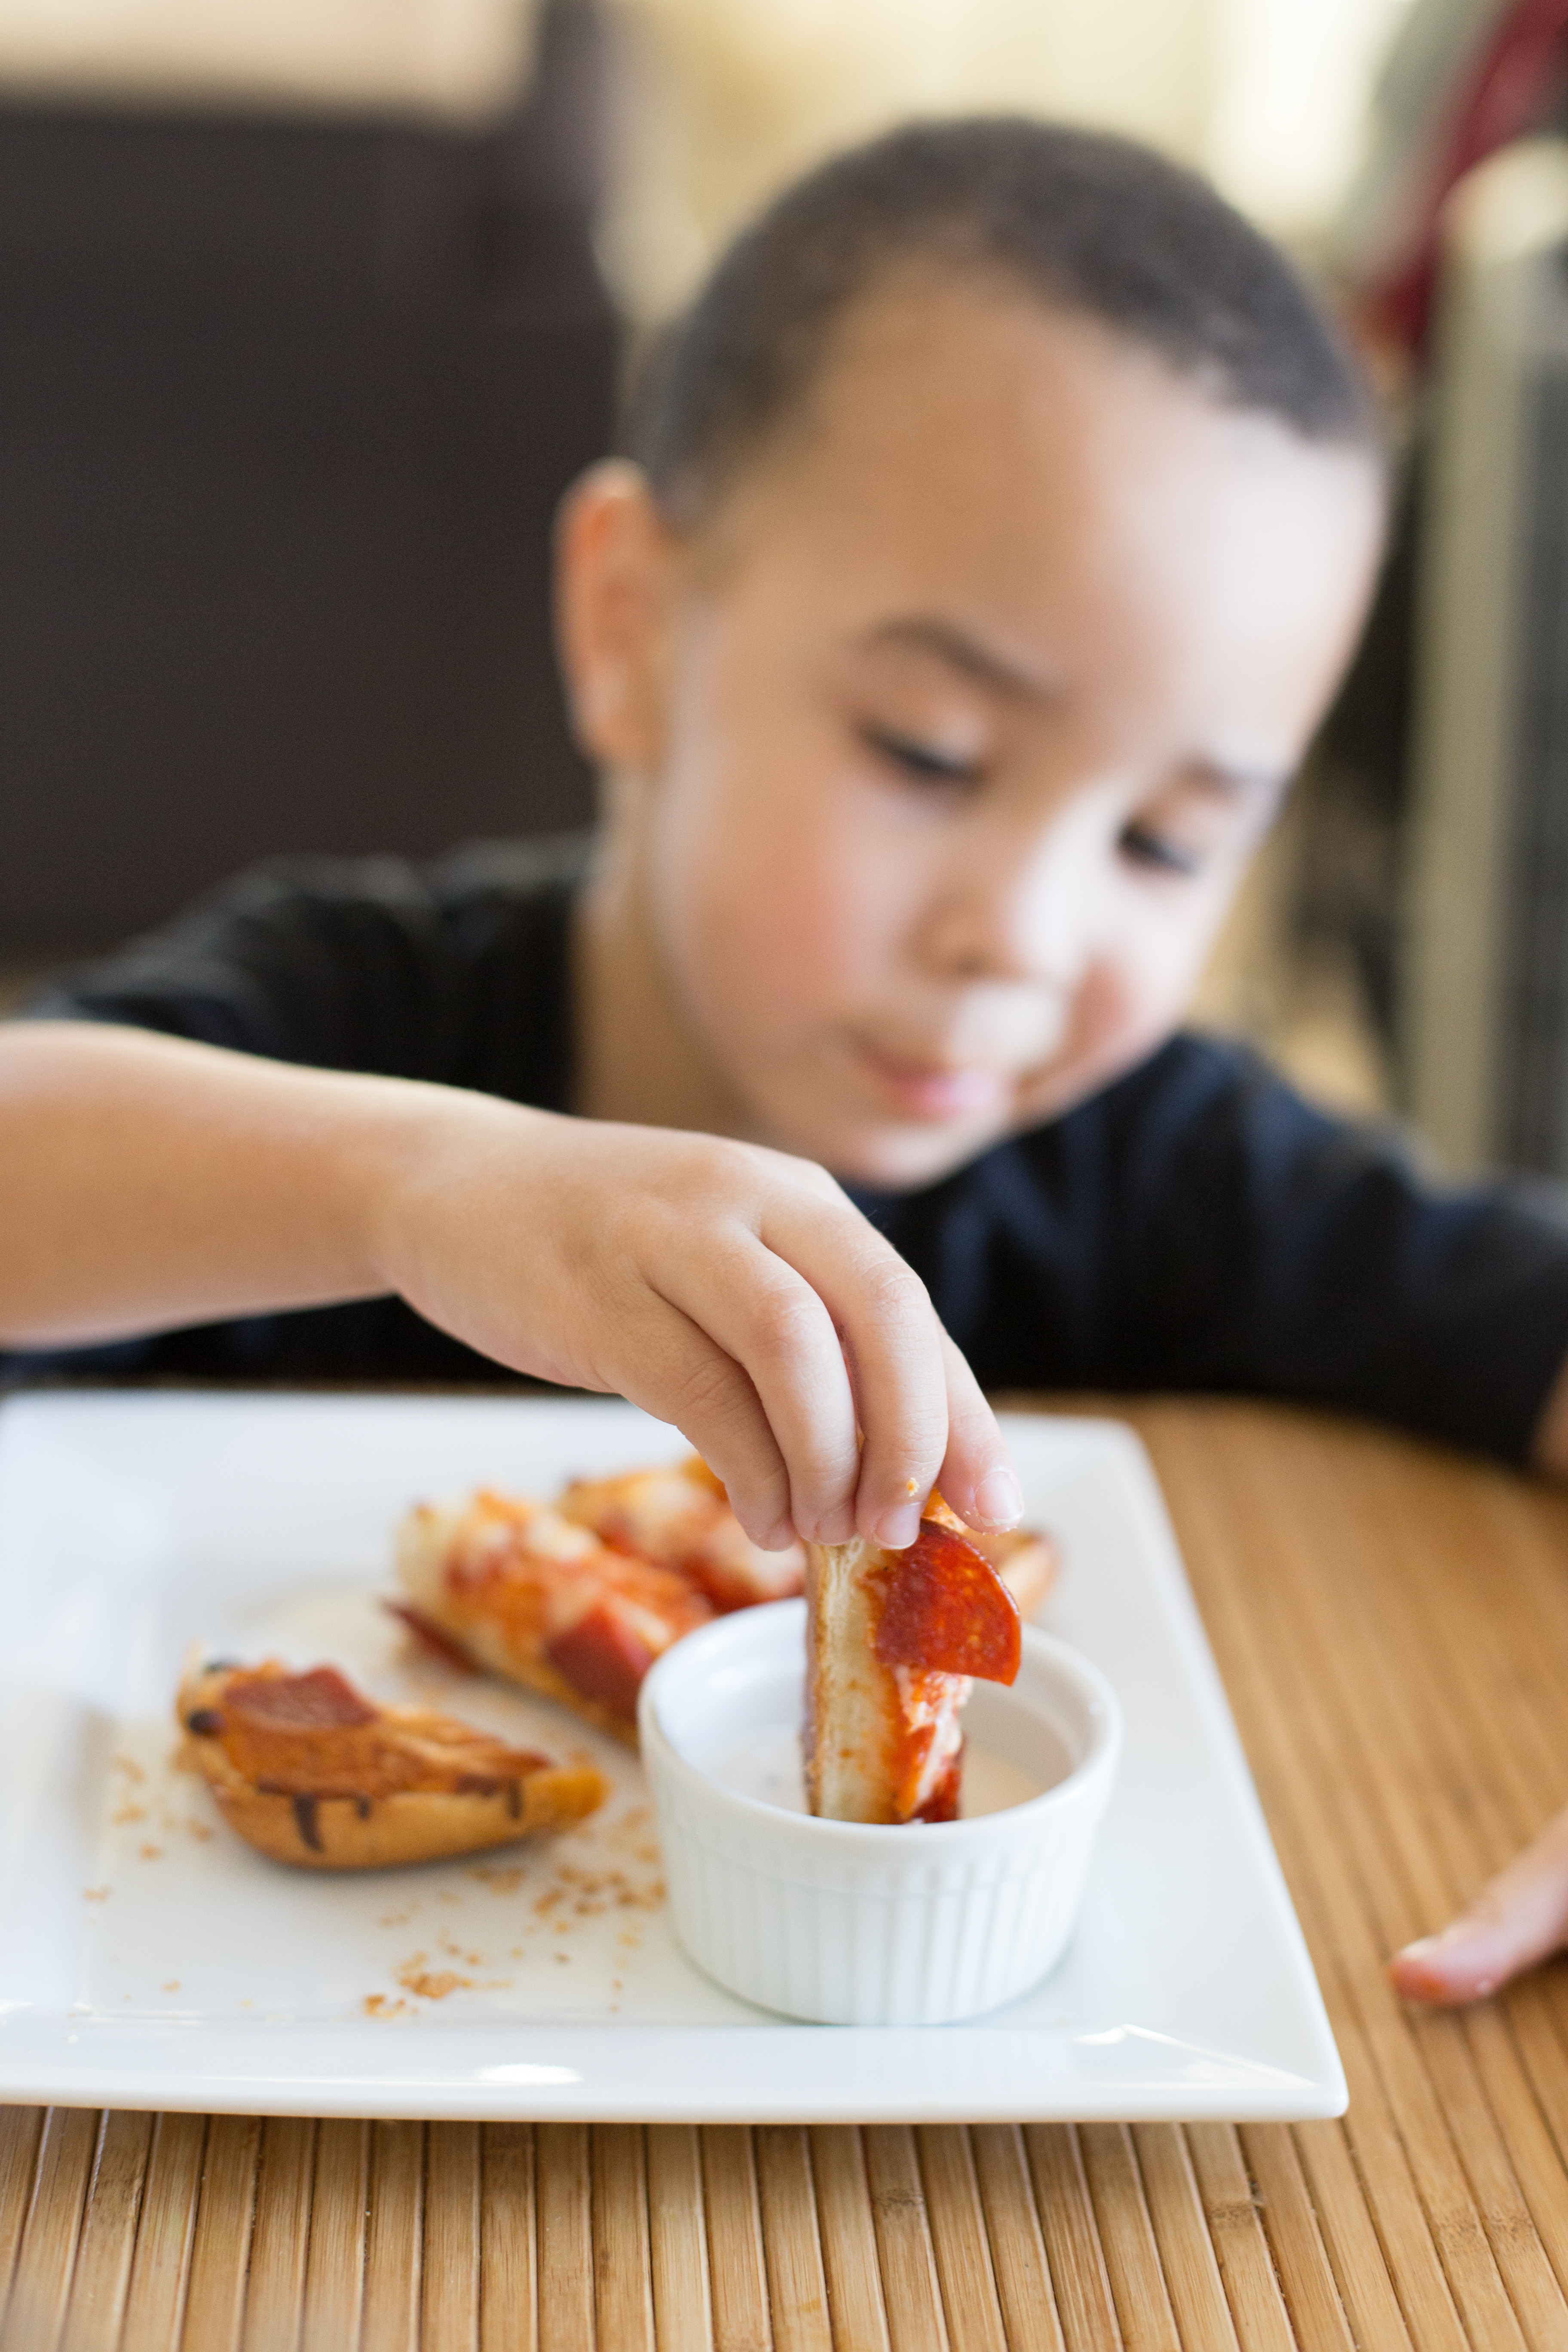 Savoring Moments with a Picky Eater